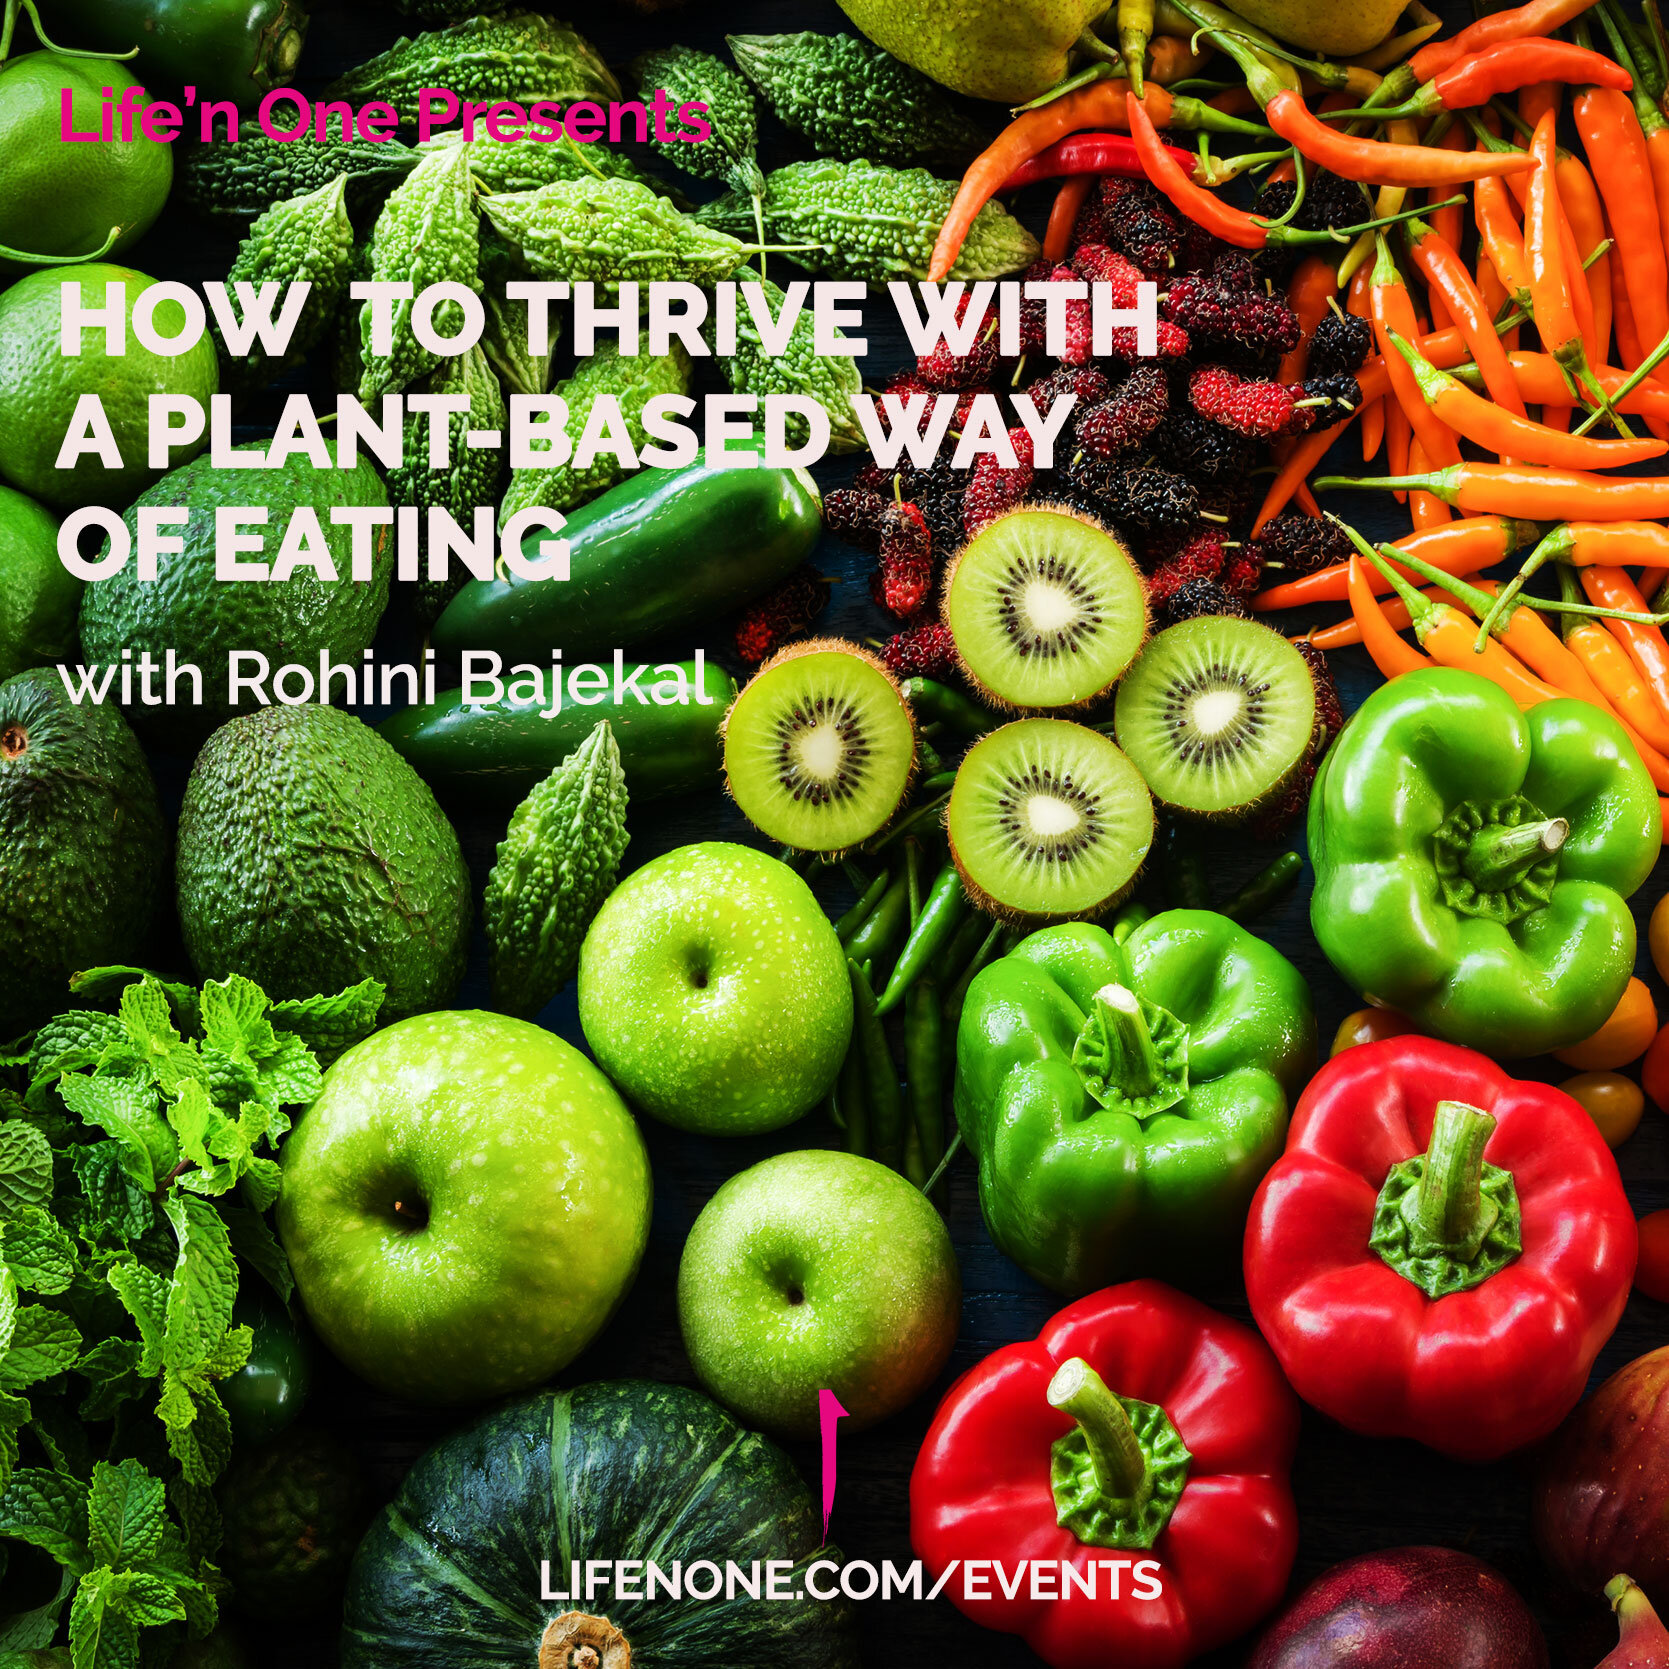 191128-how-to-thrive-with--a-plant-based-way-of-eating.jpg